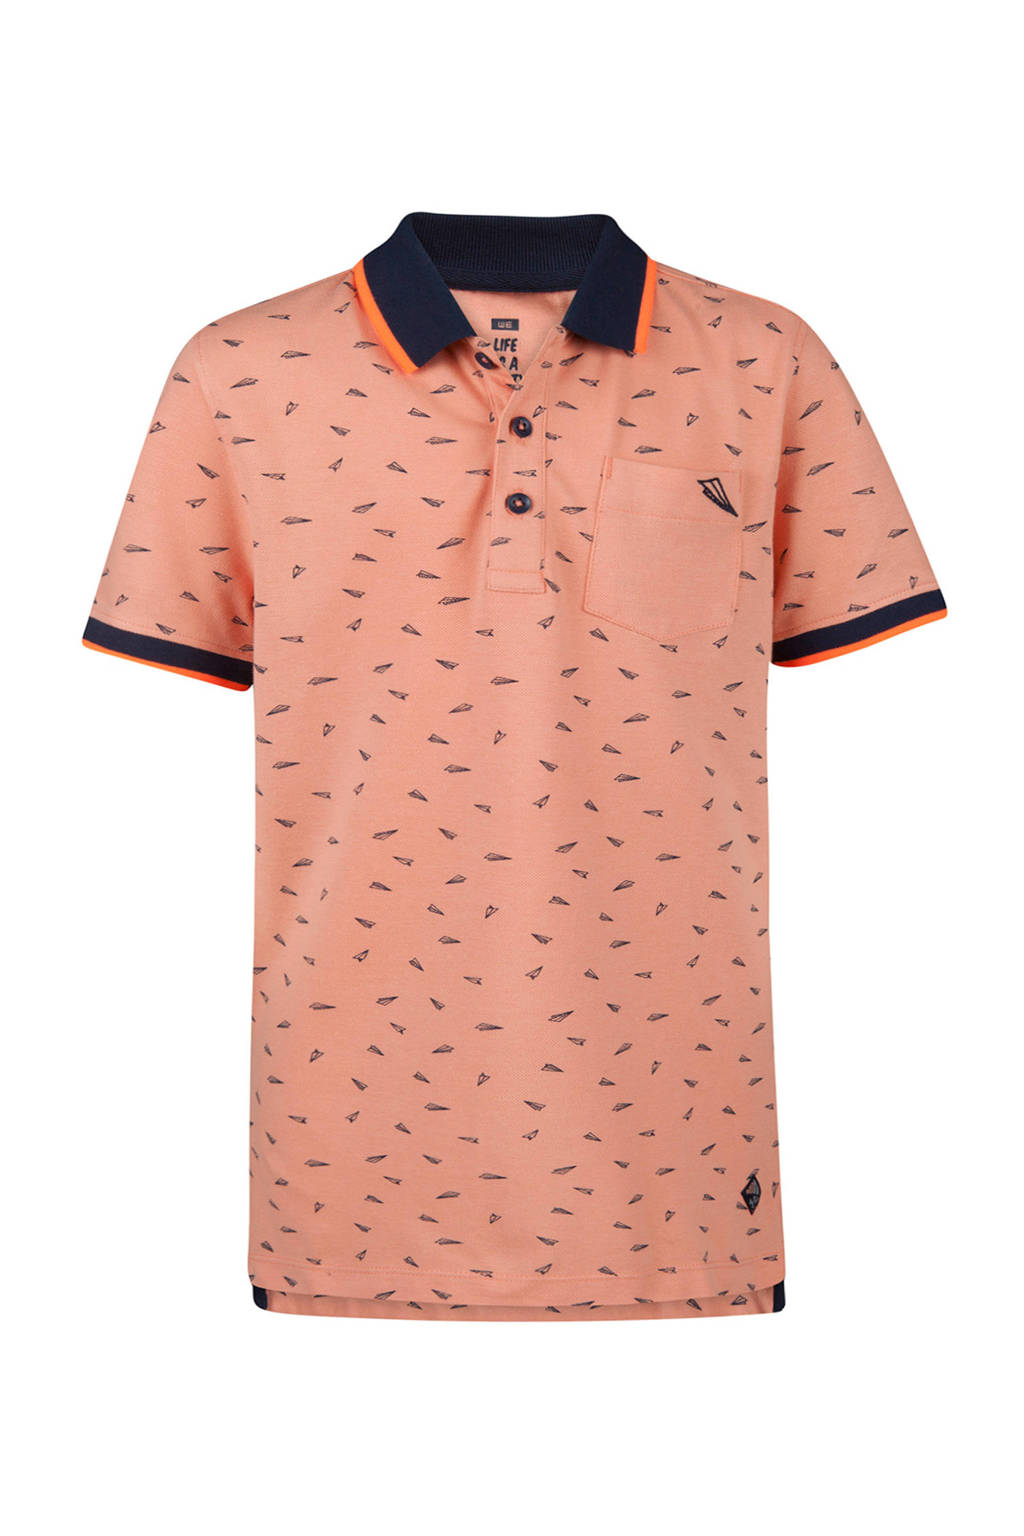 WE Fashion katoenen polo all over print zalm, Zalm